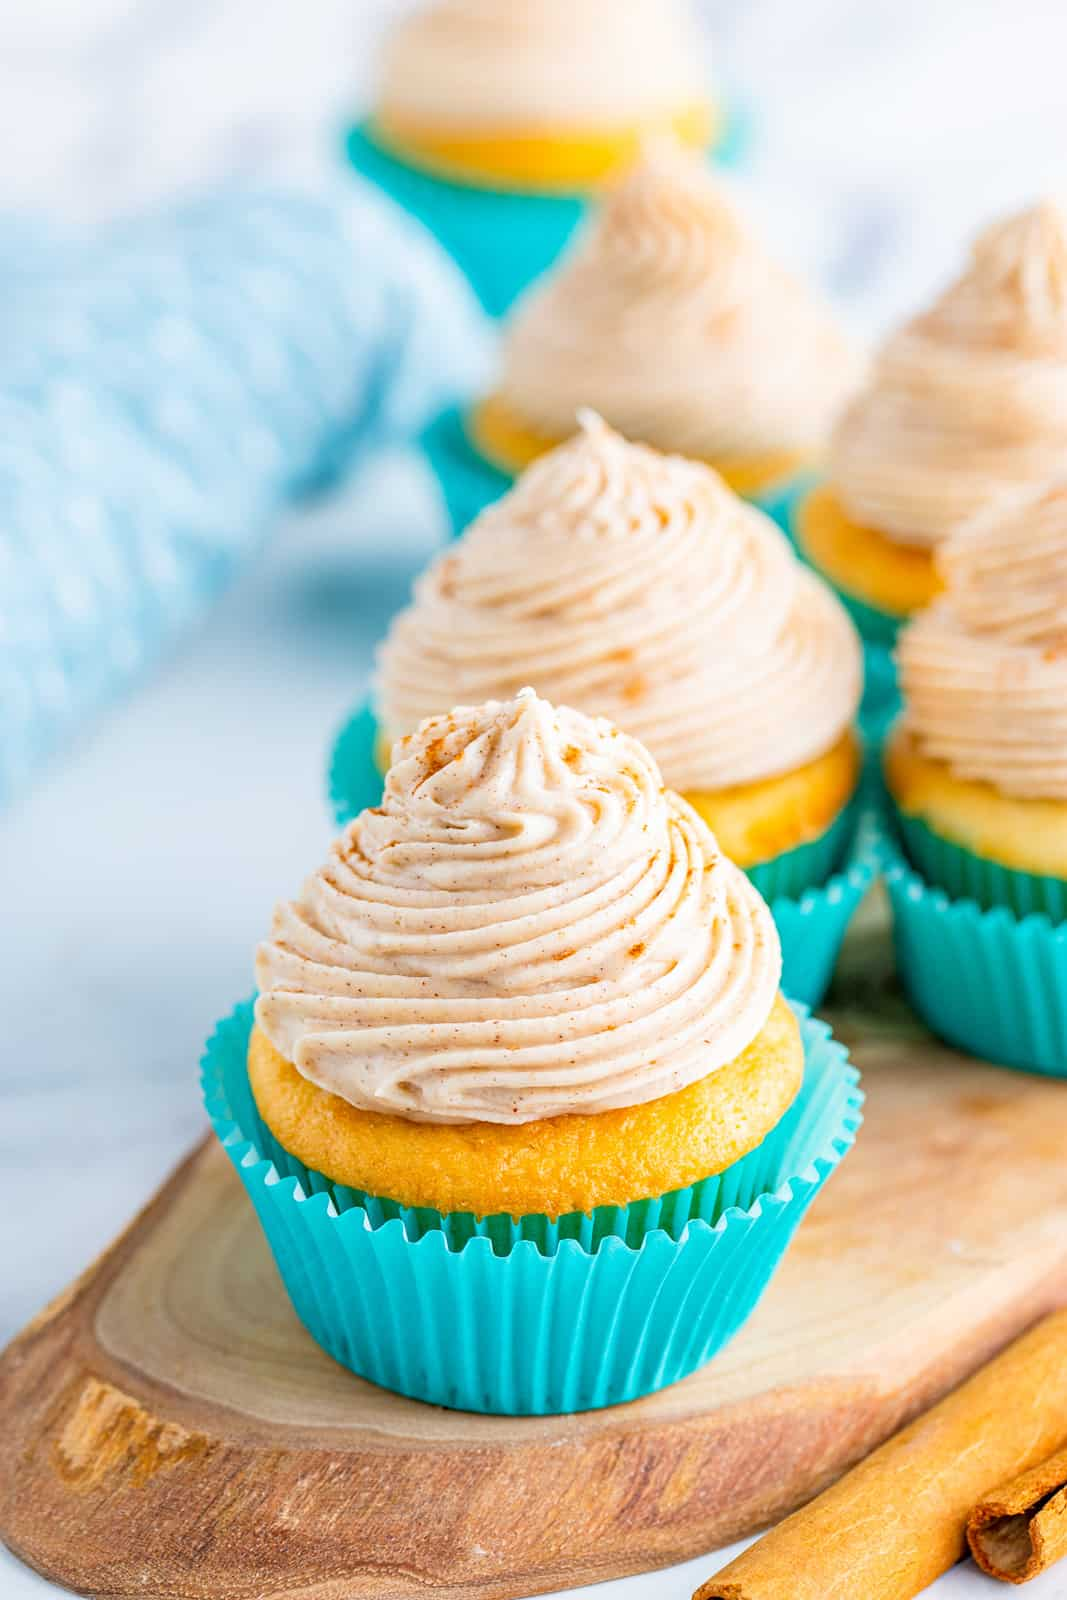 Cupcakes on wooden board topped with Cinnamon Cream Cheese Frosting